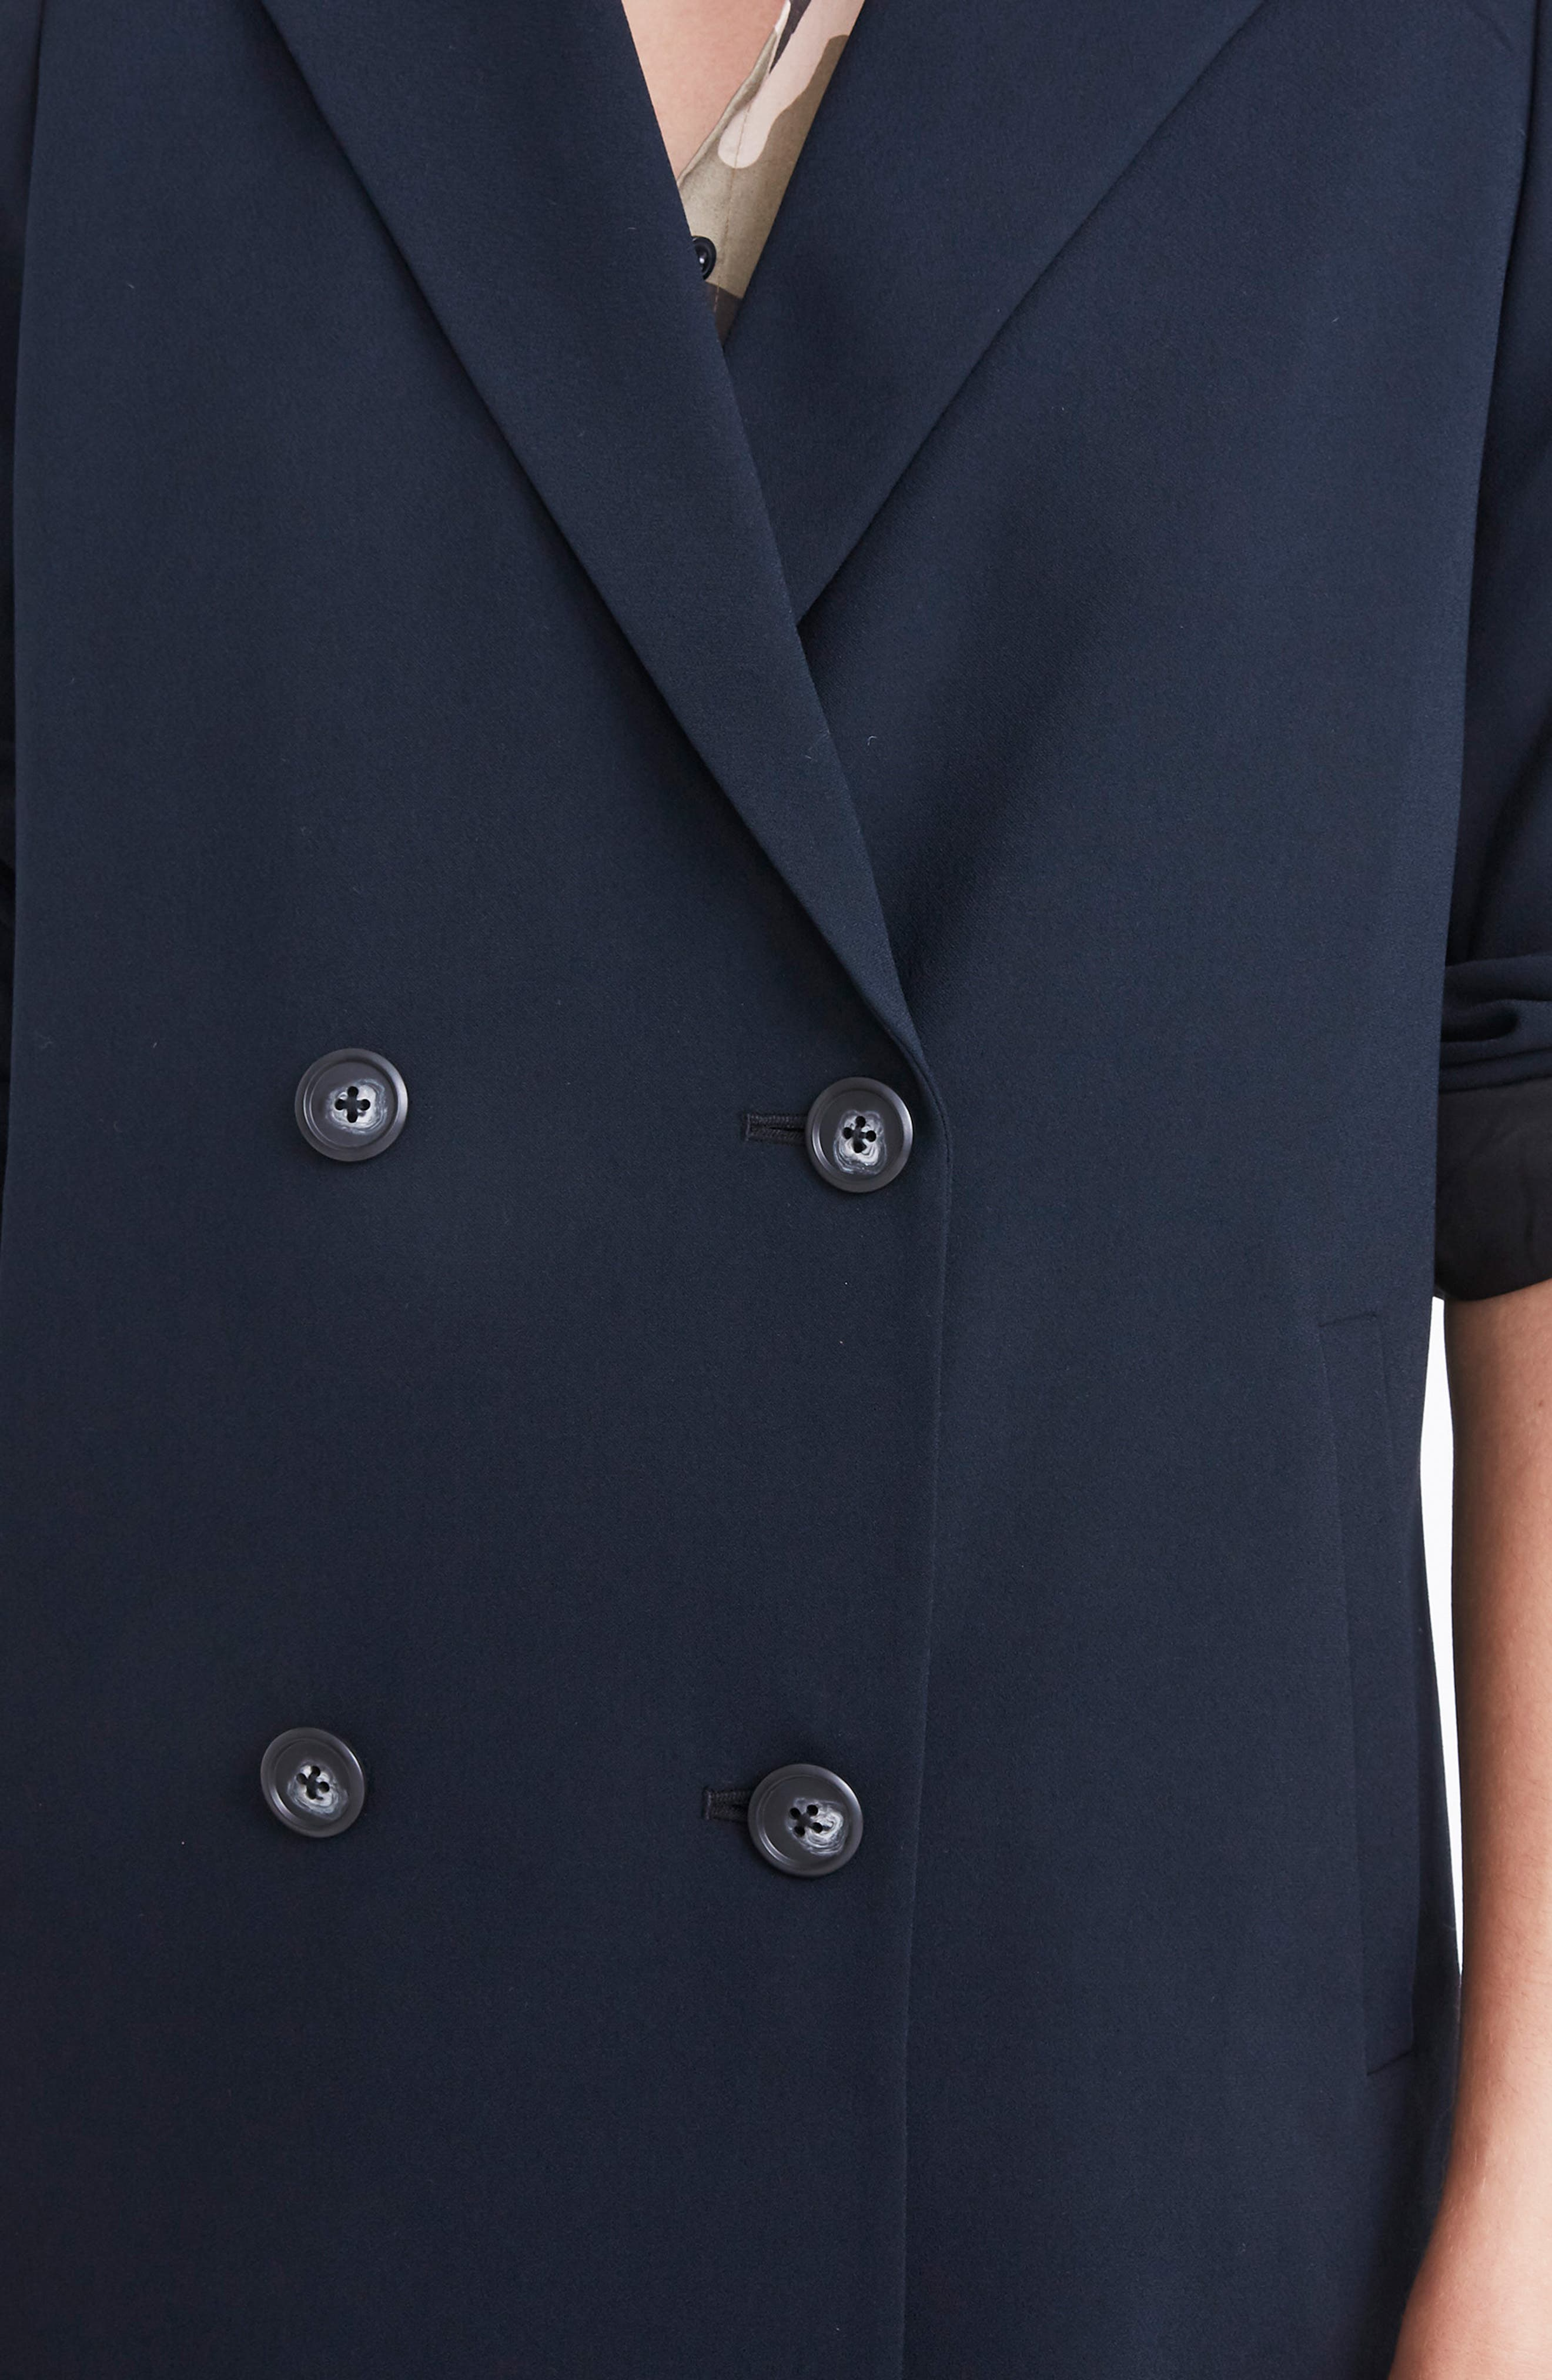 Caldwell Double Breasted Blazer,                             Alternate thumbnail 5, color,                             TRUE BLACK